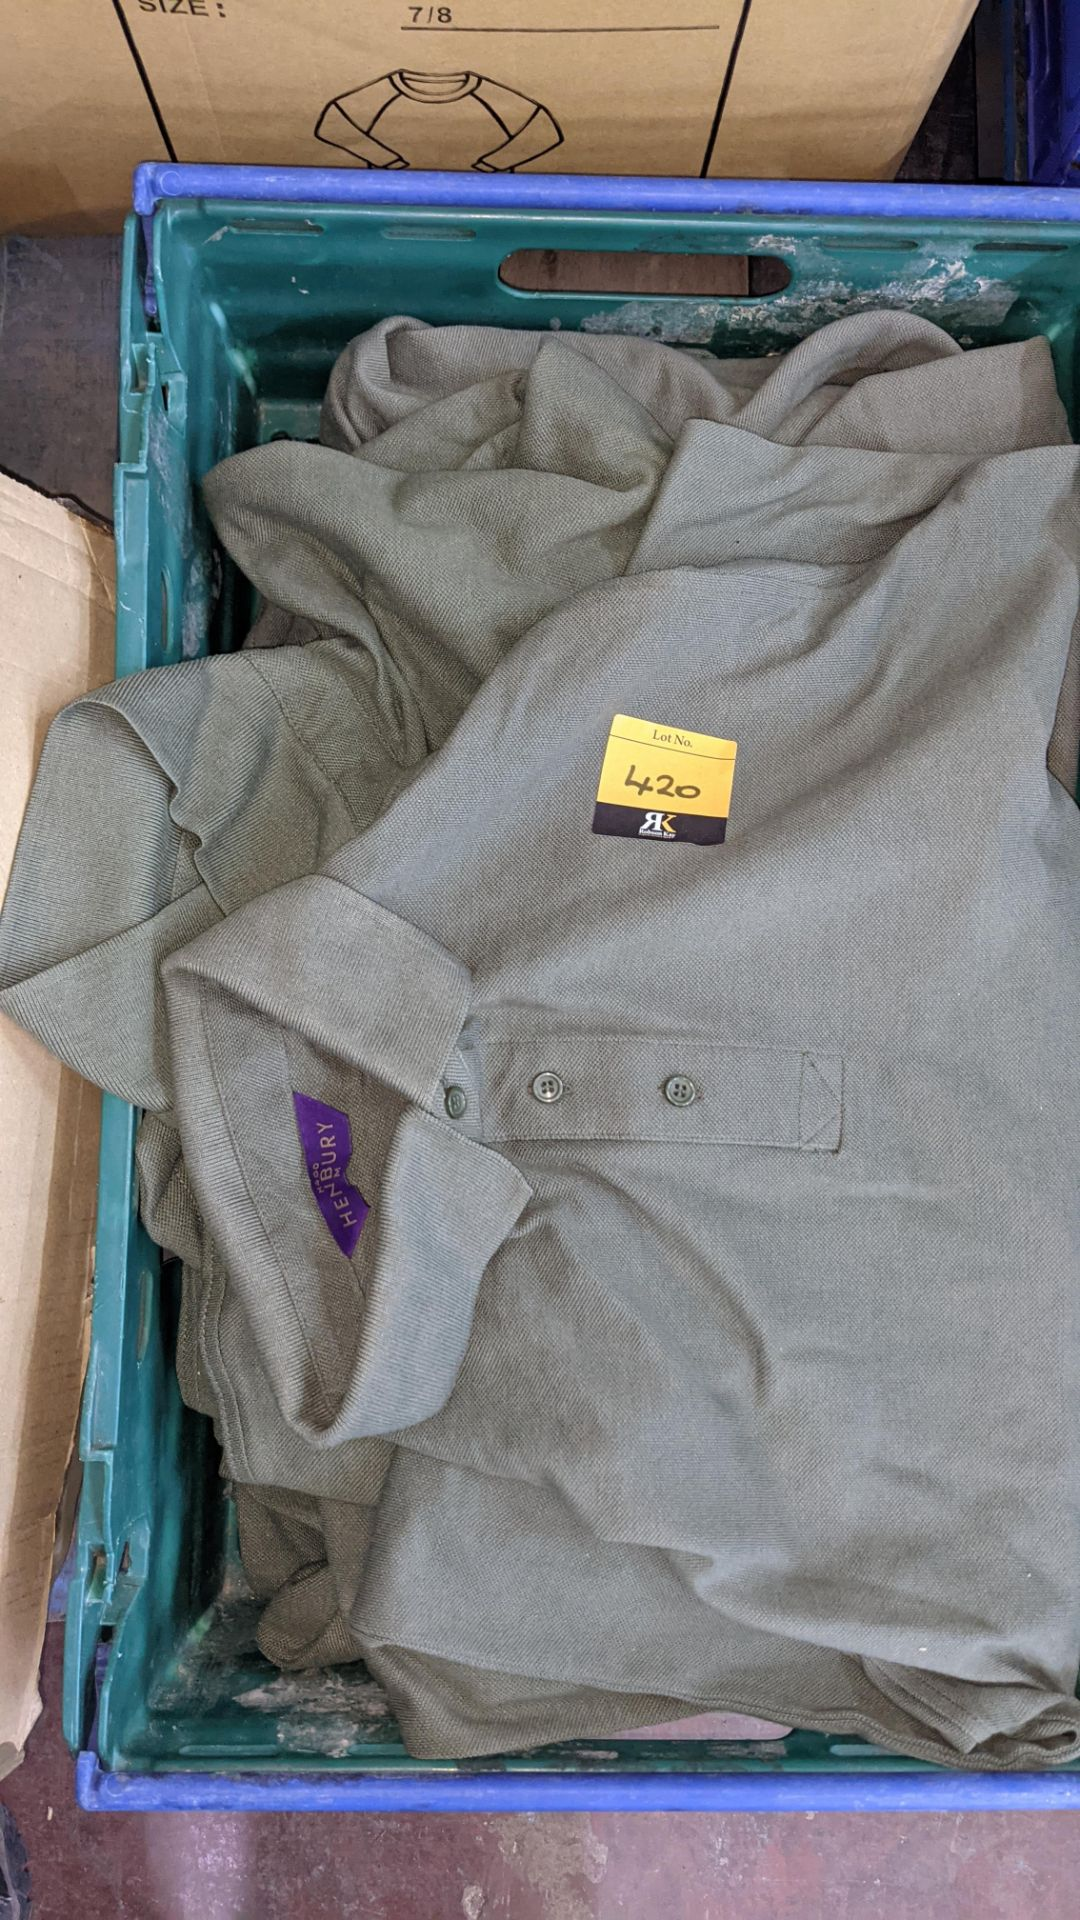 Approx 10 off green polo shirts - Image 3 of 4